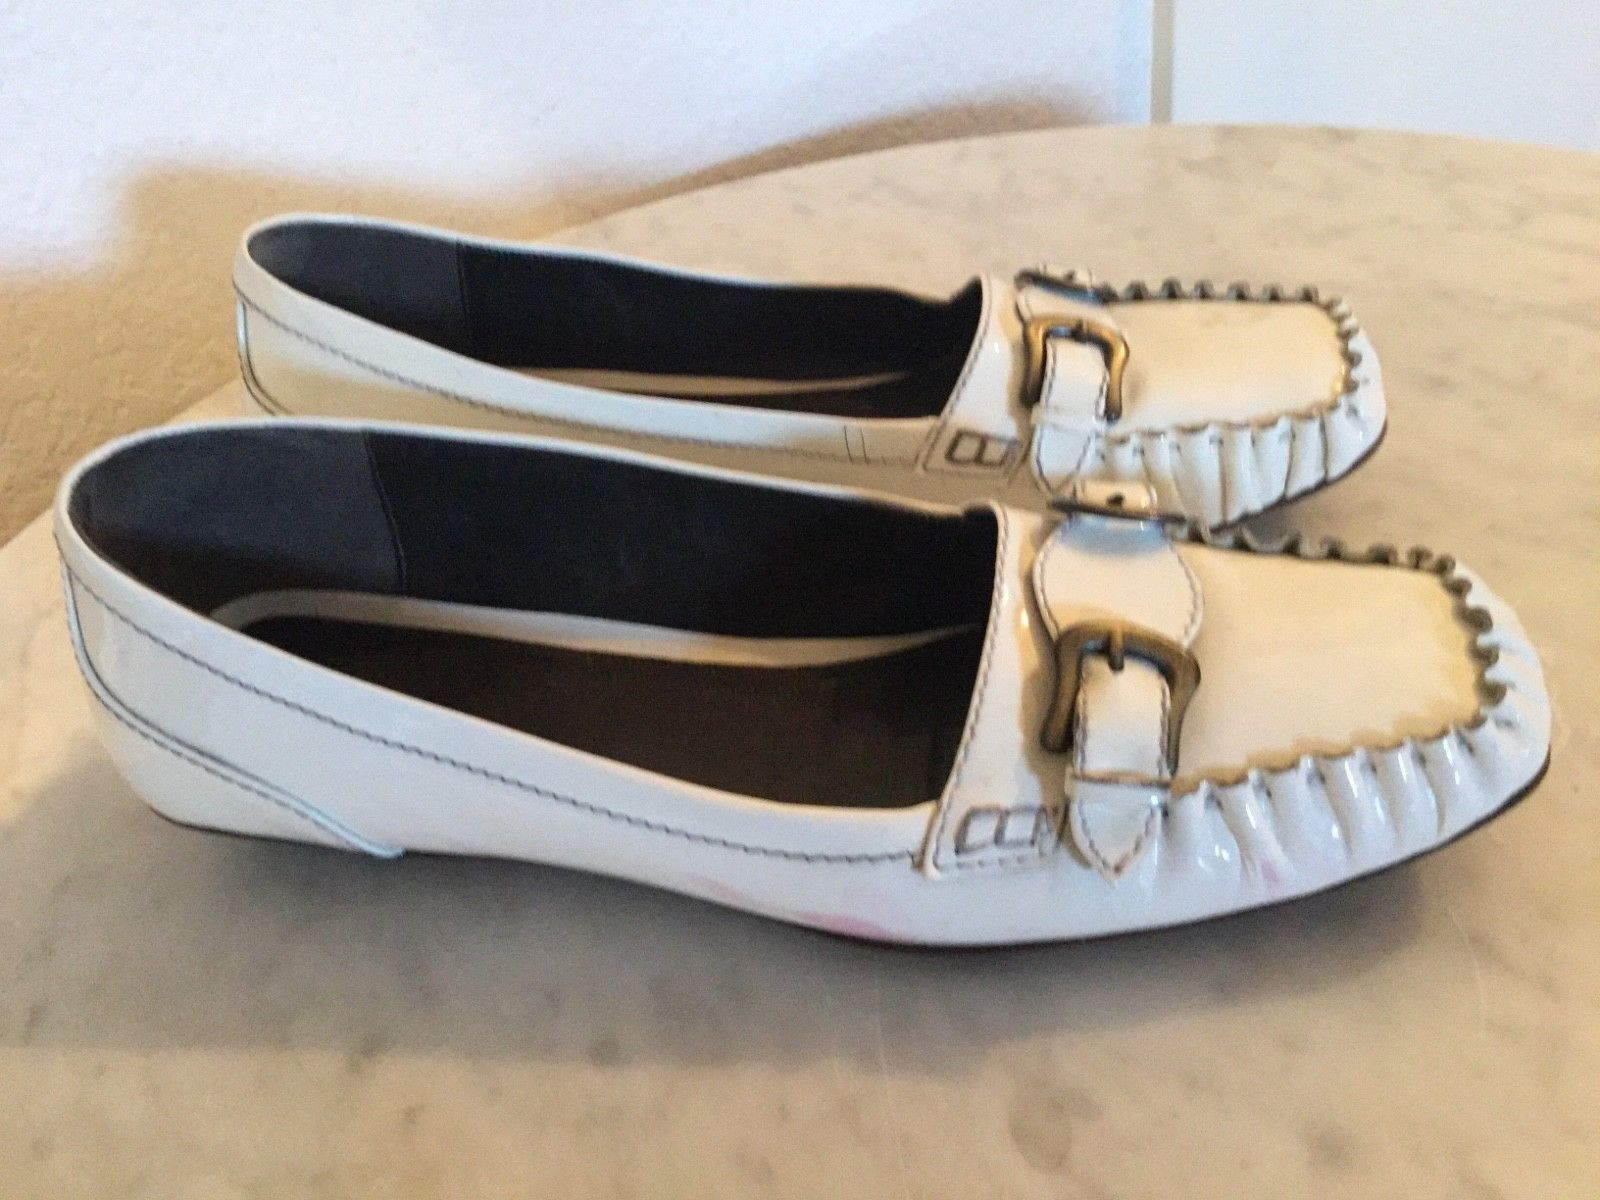 FENDI bianca Patent Leather Double Buckle Accent Front Flats. Wm Sz 39 M. Italy.